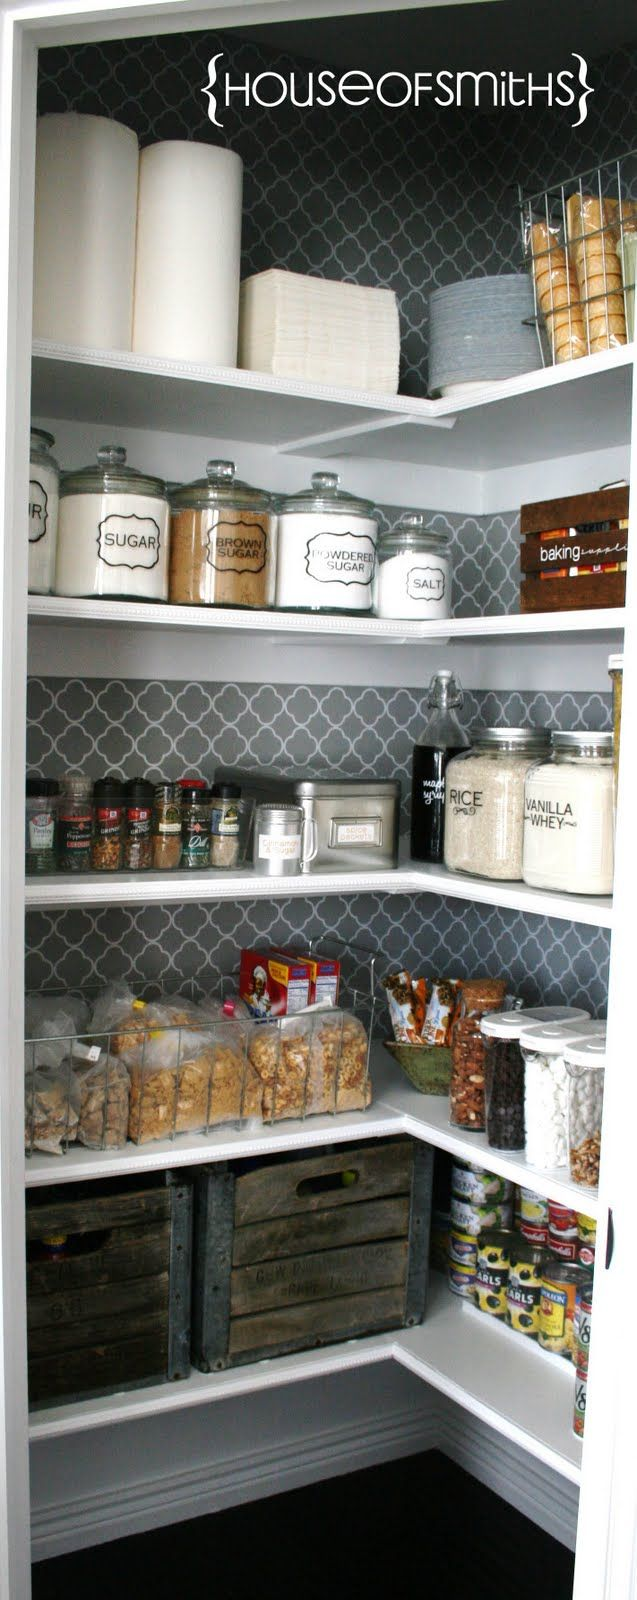 I like the patterned walls in the pantry.                              …